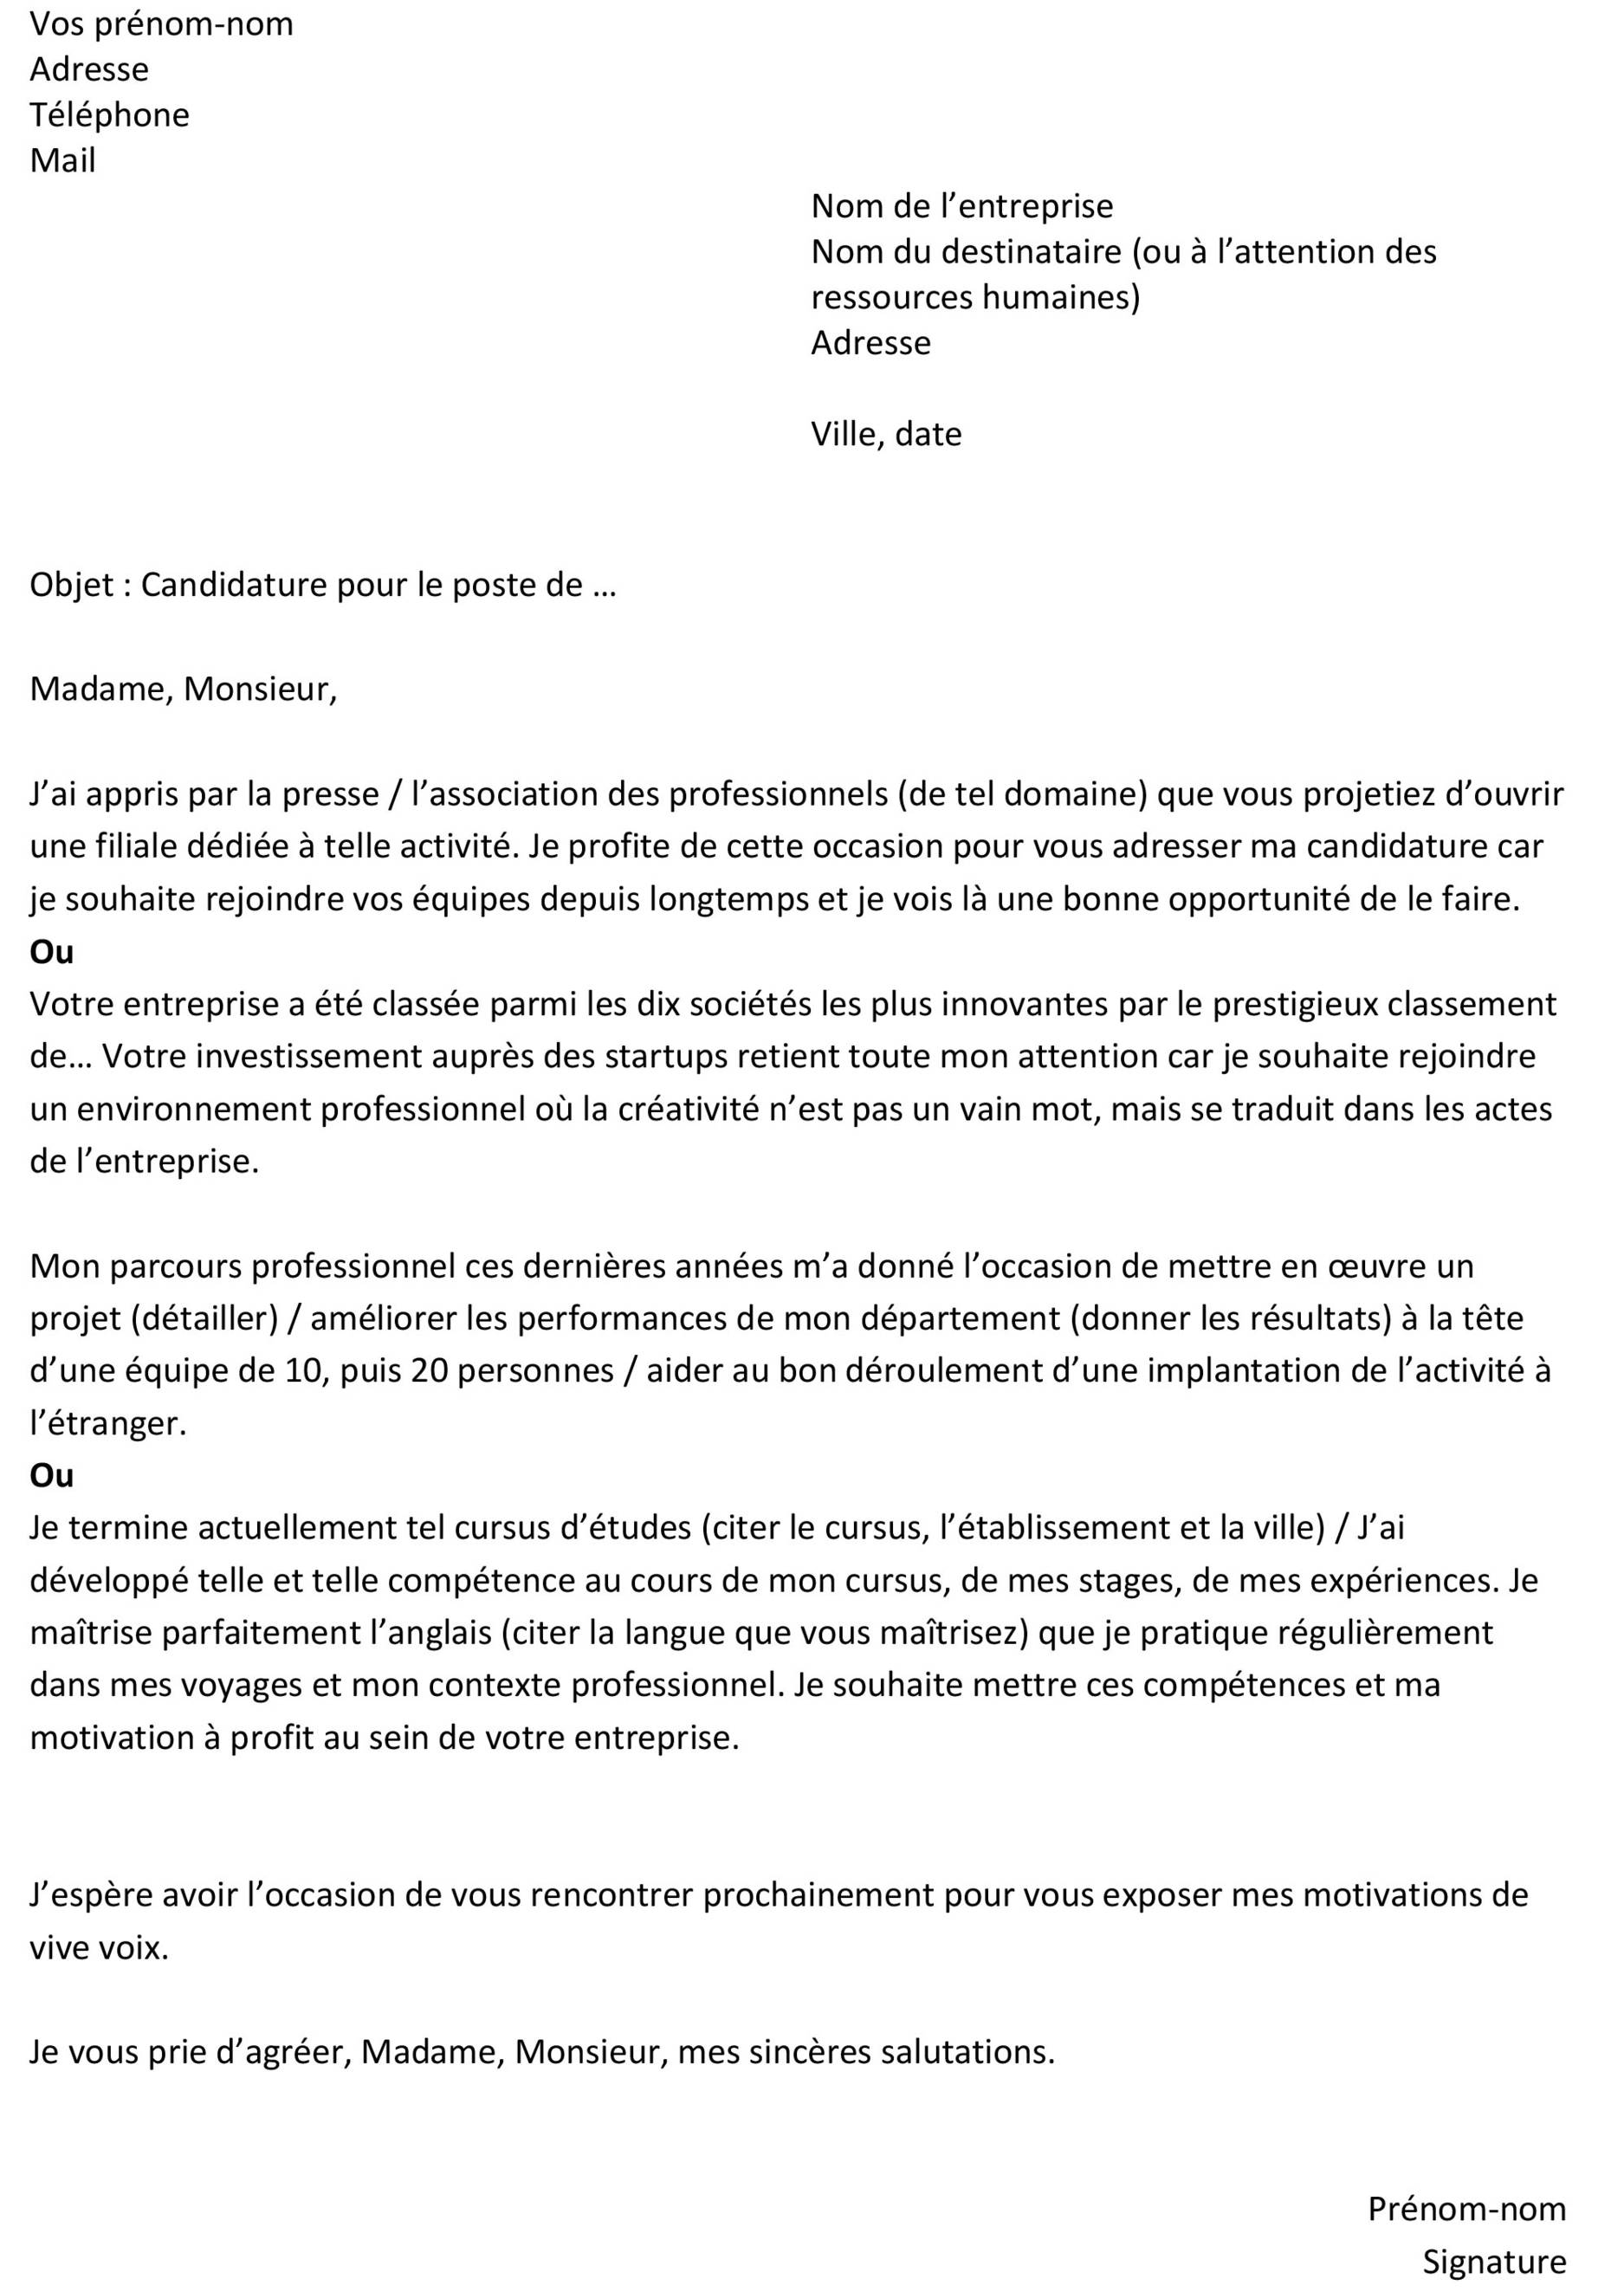 cv exemple copie coller